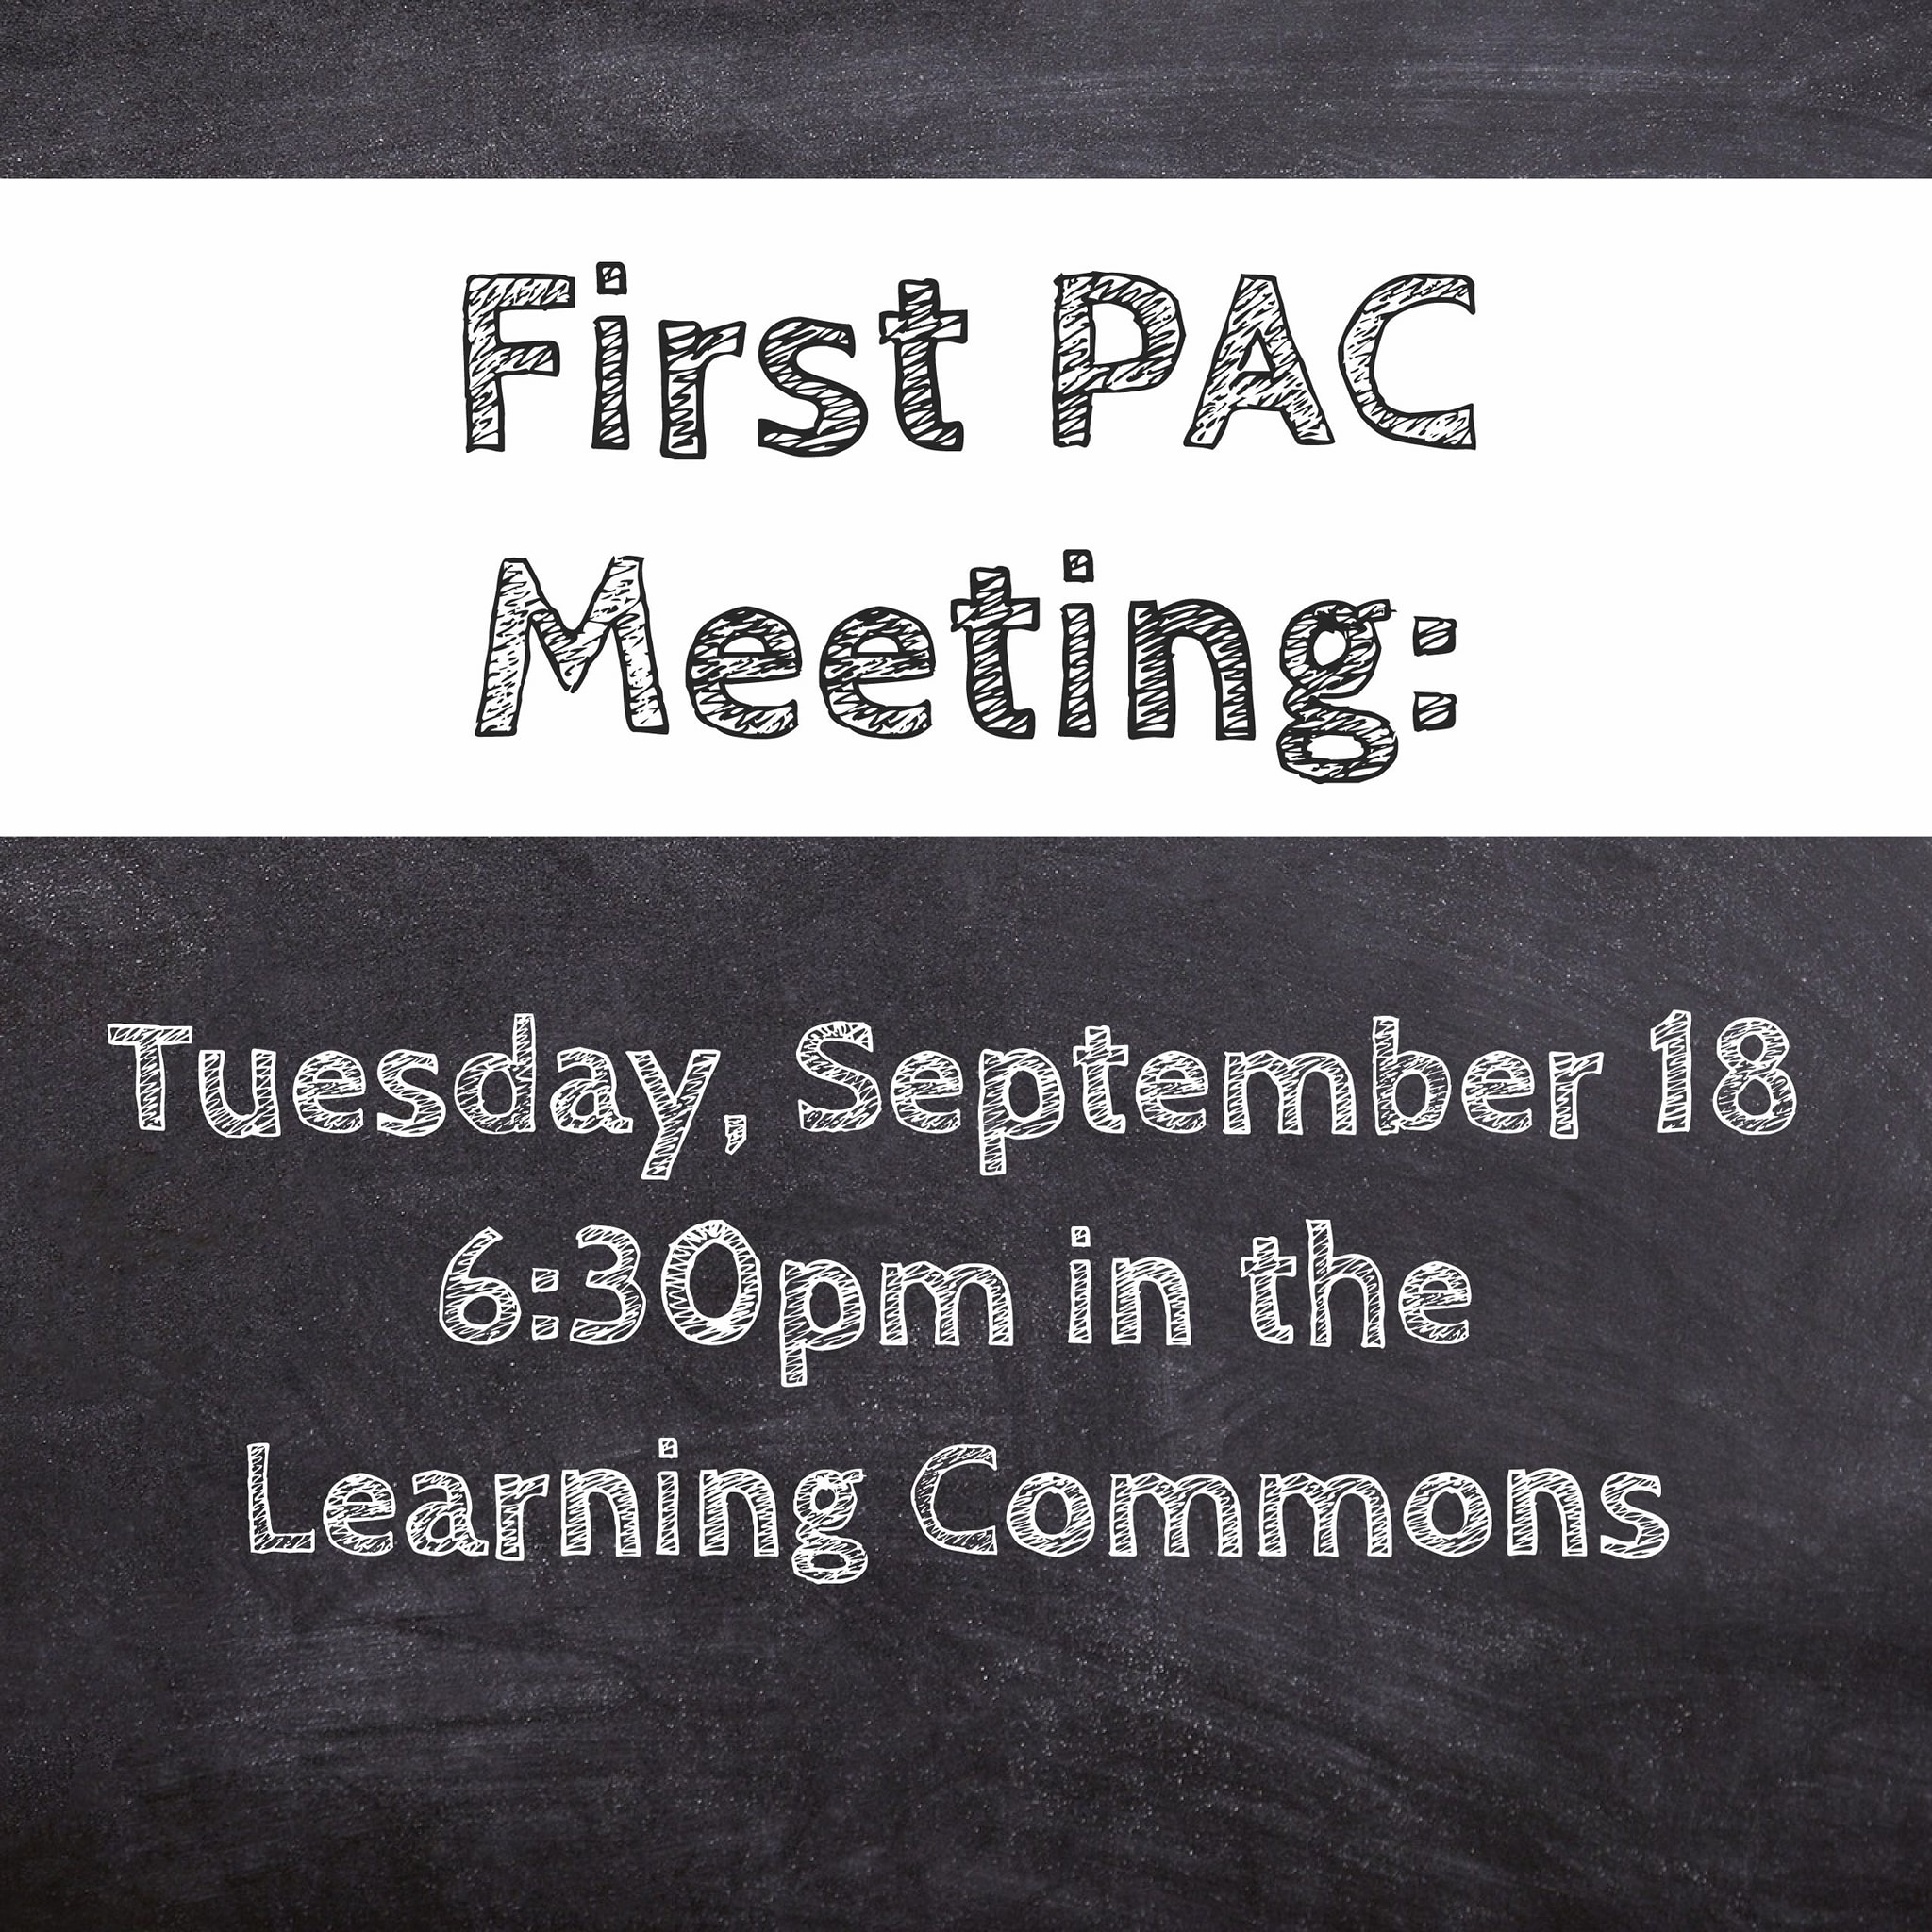 Meeting Date: Sept 18th, 6:30pm in the learning commons